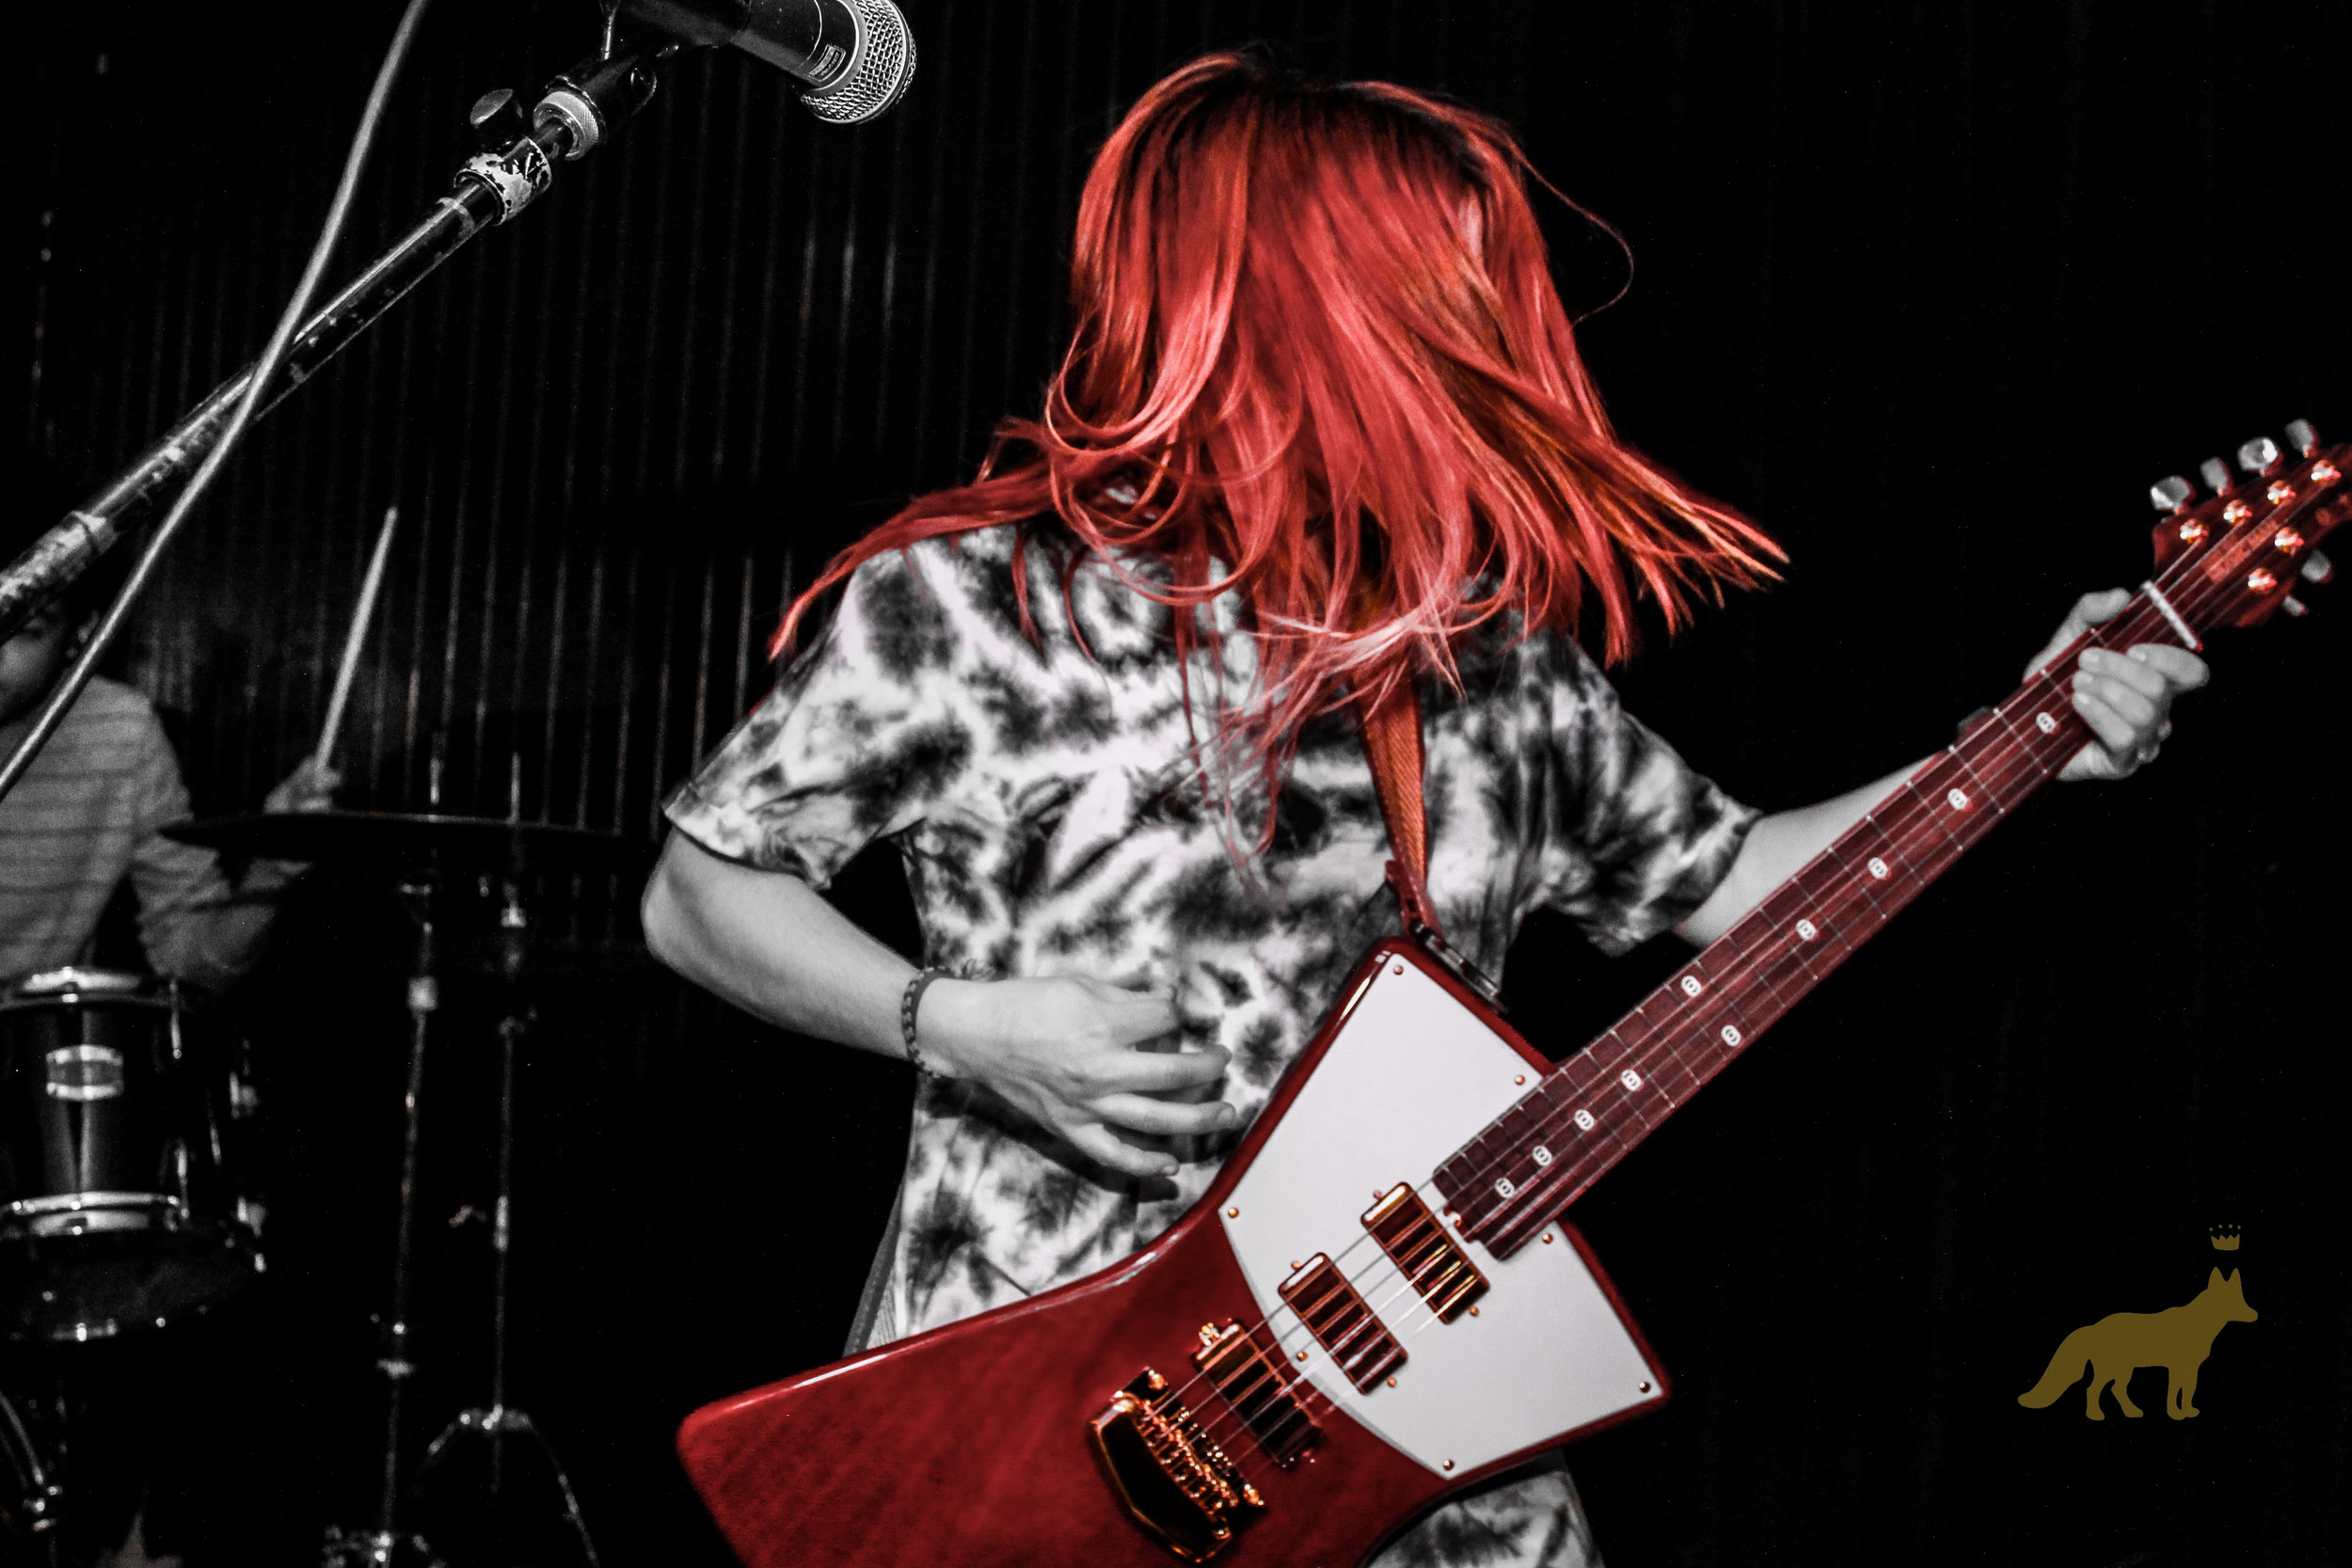 Danielle Minch at guitar during our #WomenInRock show. Photo courtesy of Kevin Vallejos.